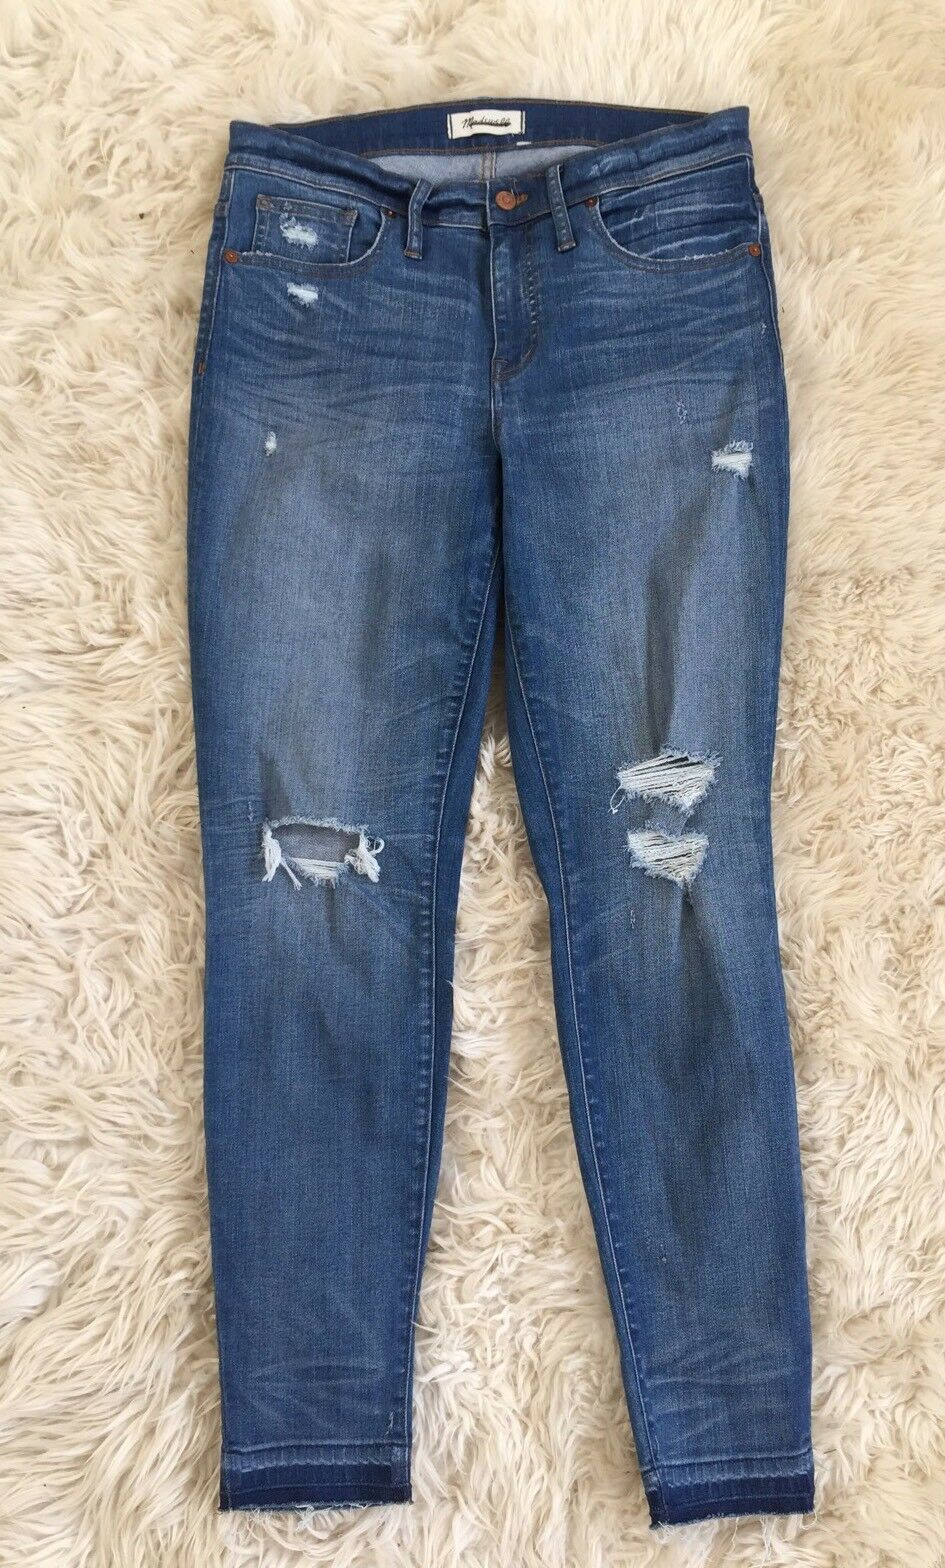 Madewell 9  high-rise skinny jeans in winifred wash  drop-hem edition 30 G6148